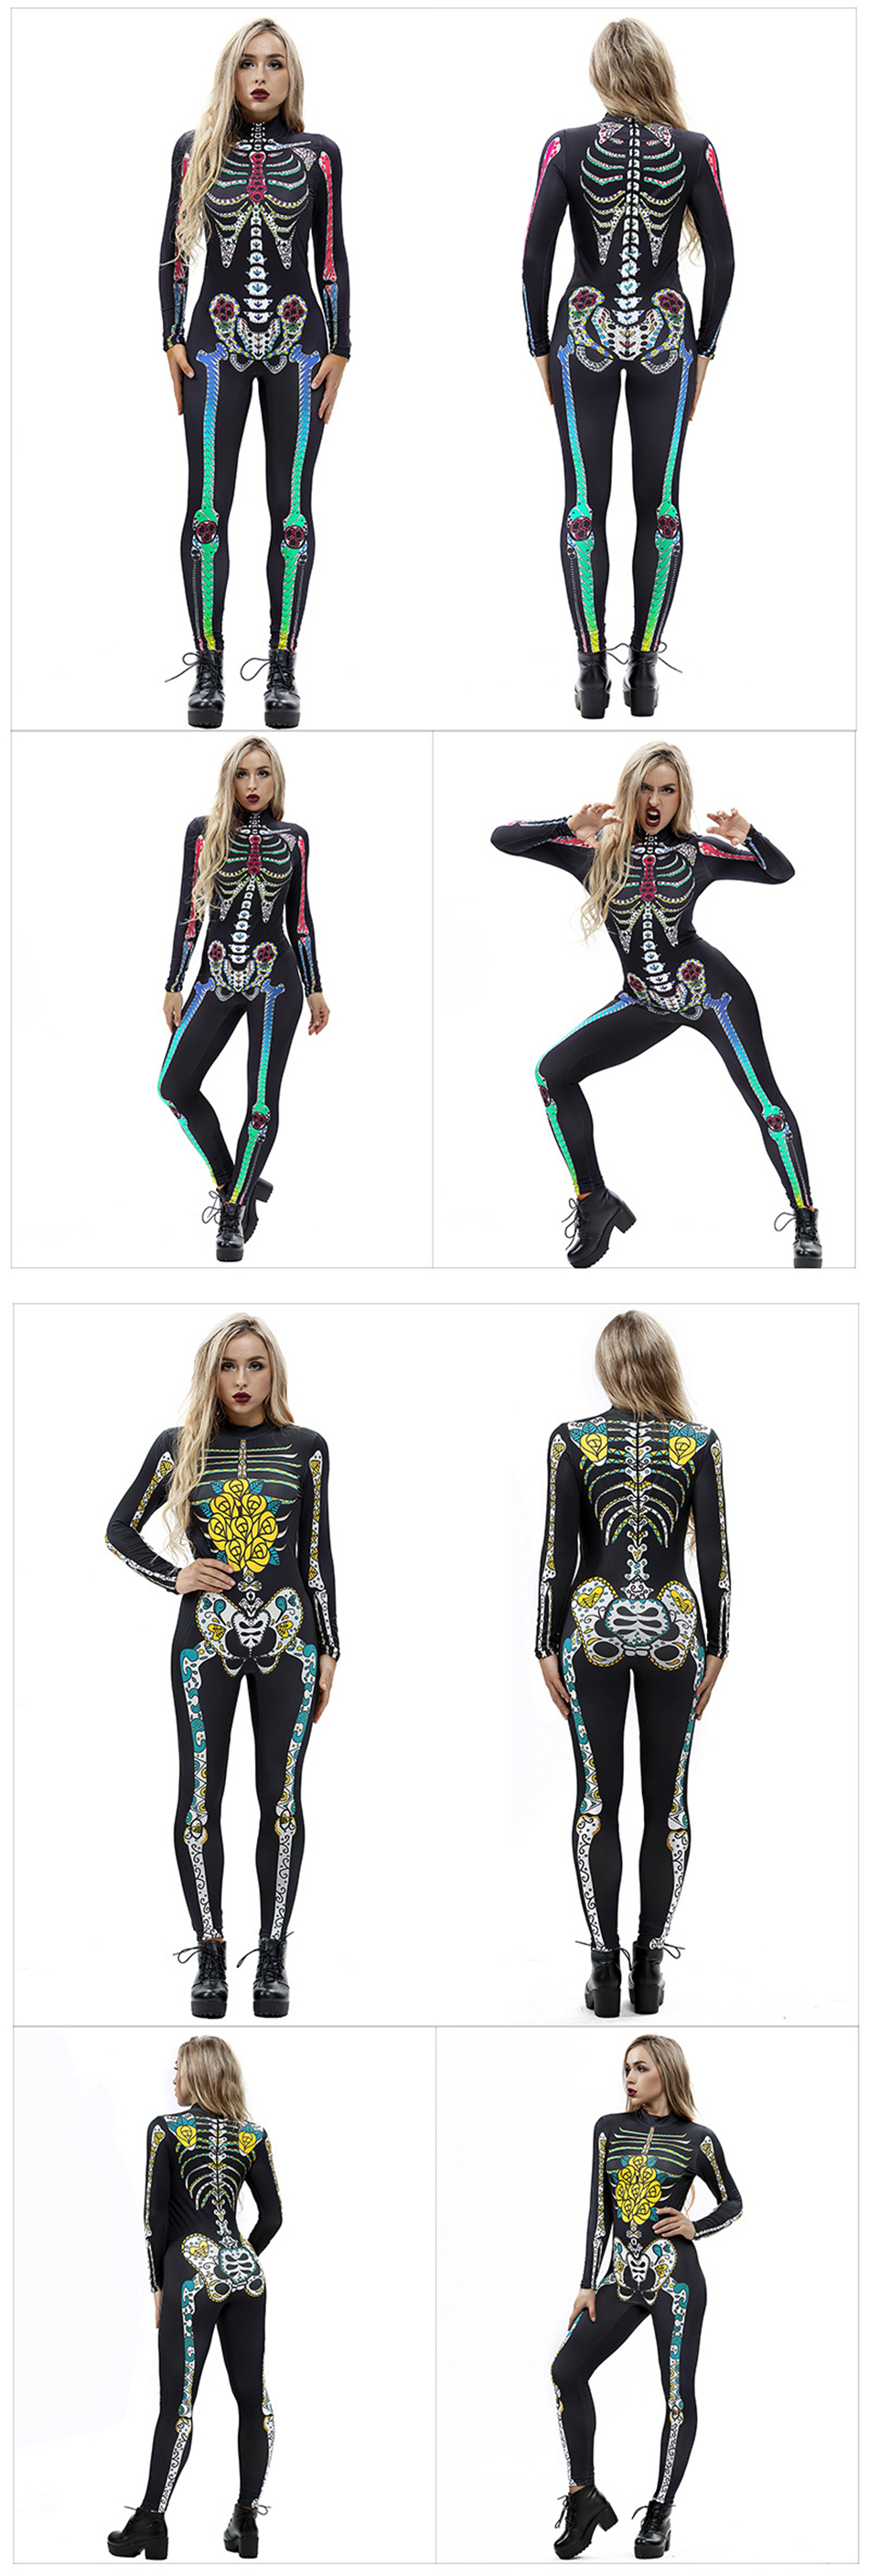 Hce5ac0989a48465e98109b30aa0c41eaE - 8Style Halloween Cosplay Costumes for Women Adult Scary Skeleton Bodysuit Print Long Sleeve Carnival Party Ghost Skull Dress